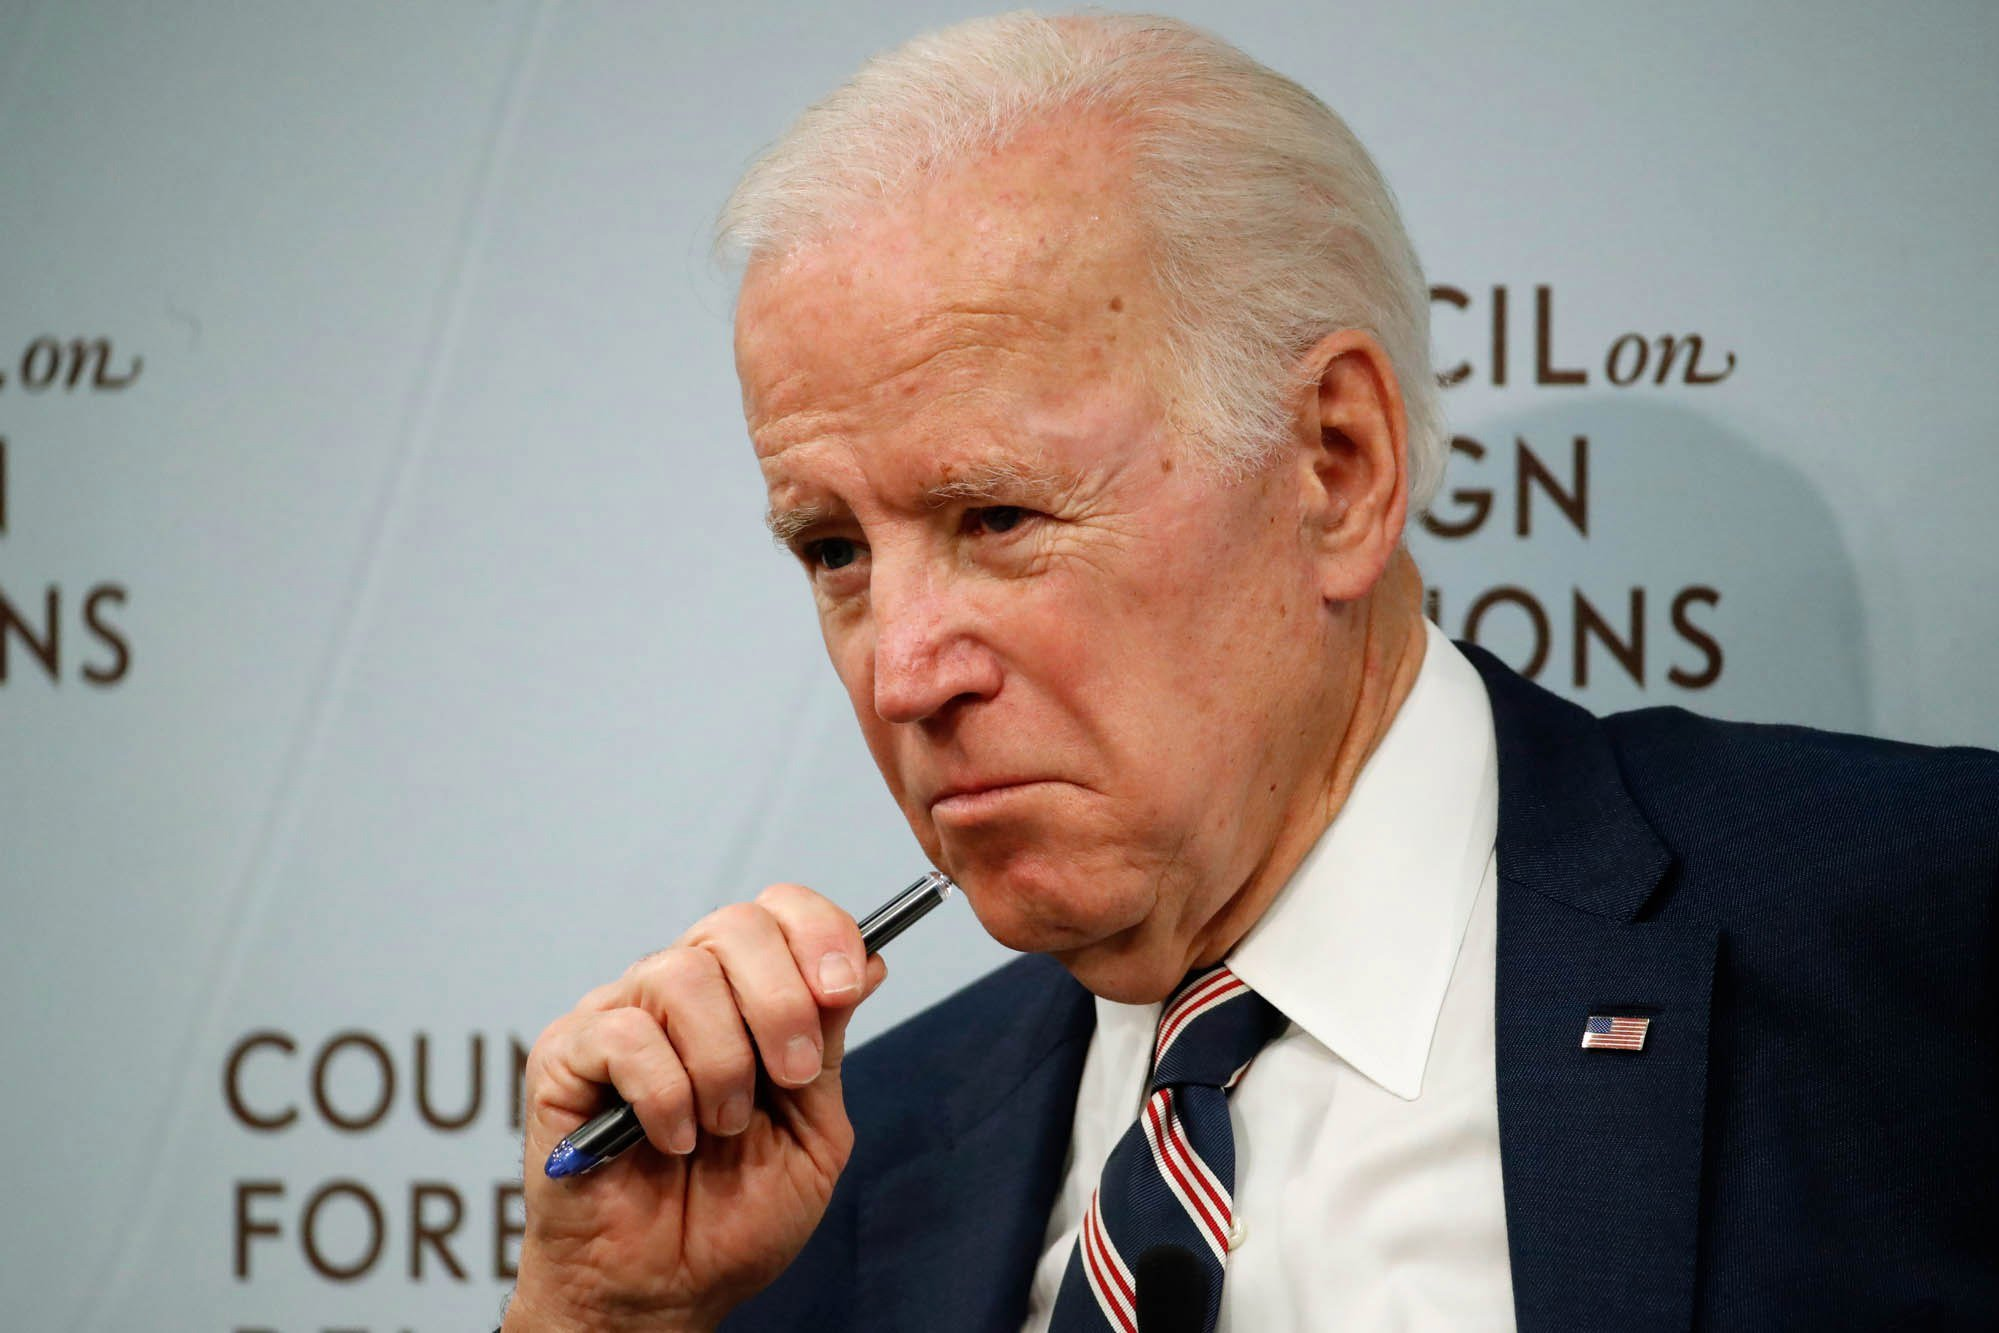 Biden says he would have 'beat the hell' out of Trump back in high school